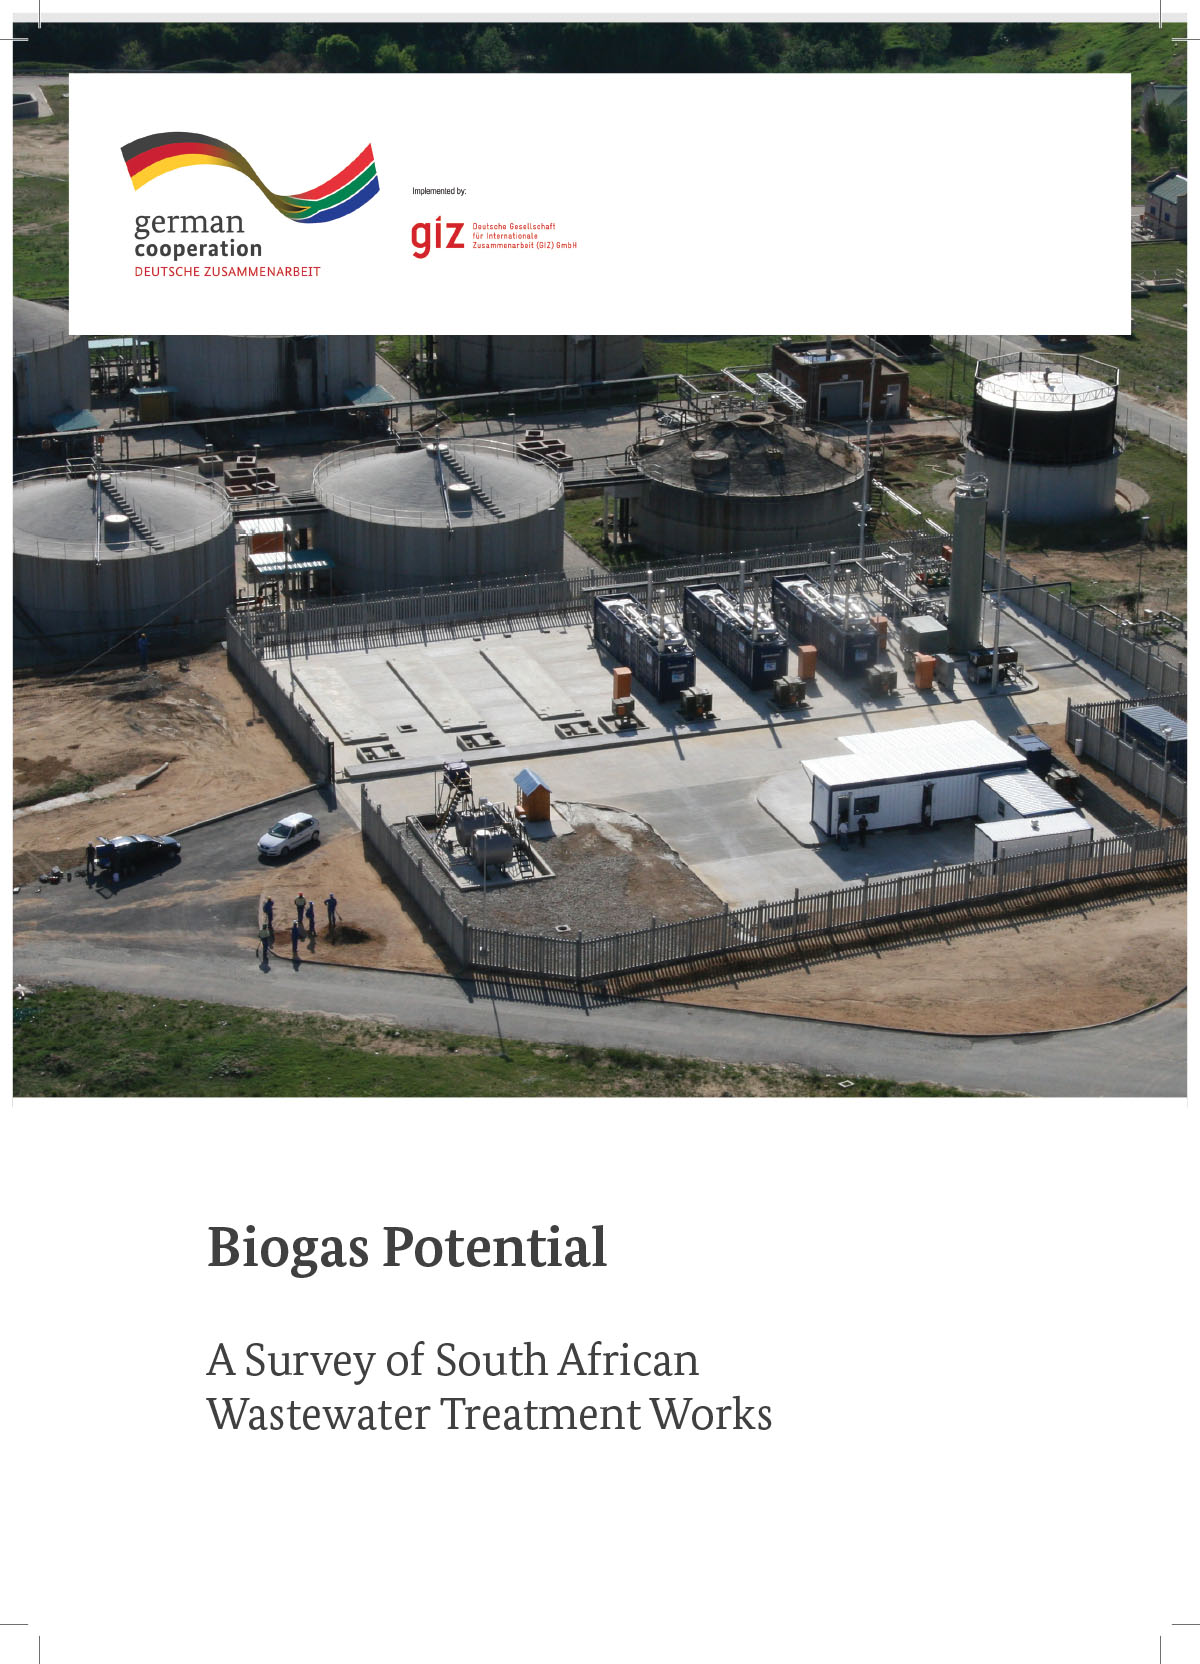 Assessment of Biogas Potential from WWTP in South Africa